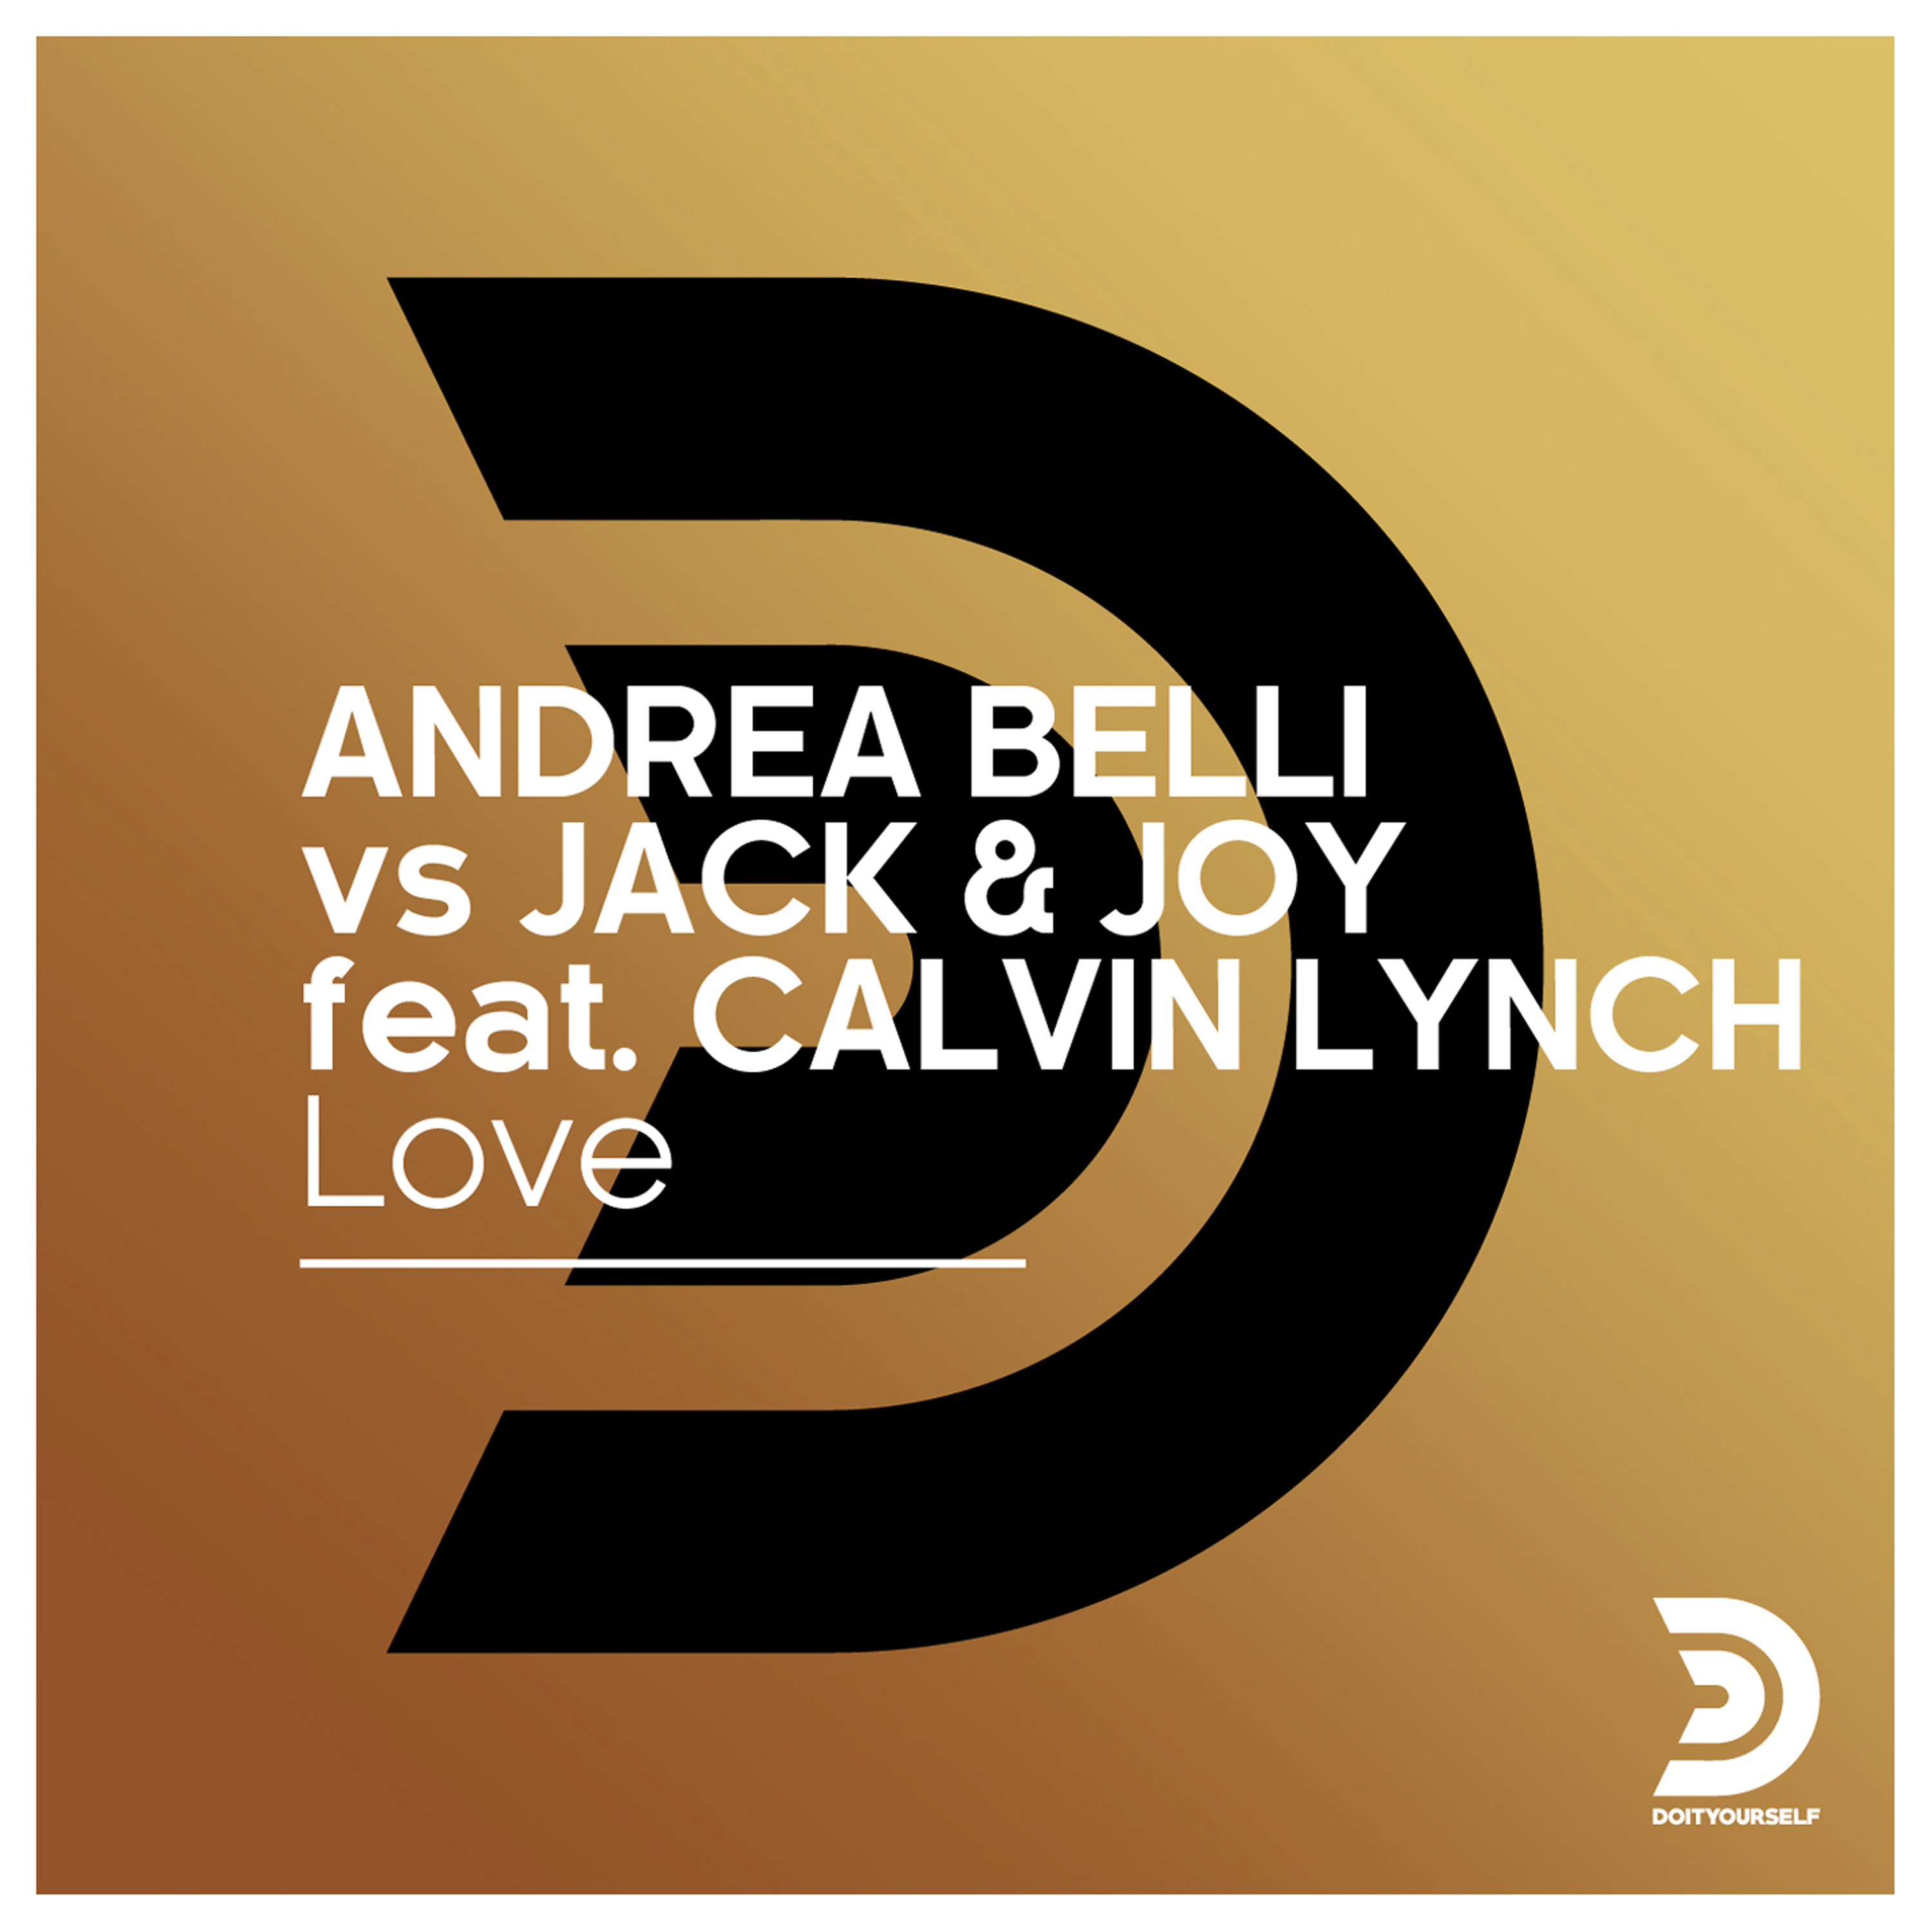 ANDREA BELLI vs JACK & JOY feat. CALVIN LYNCH - Love